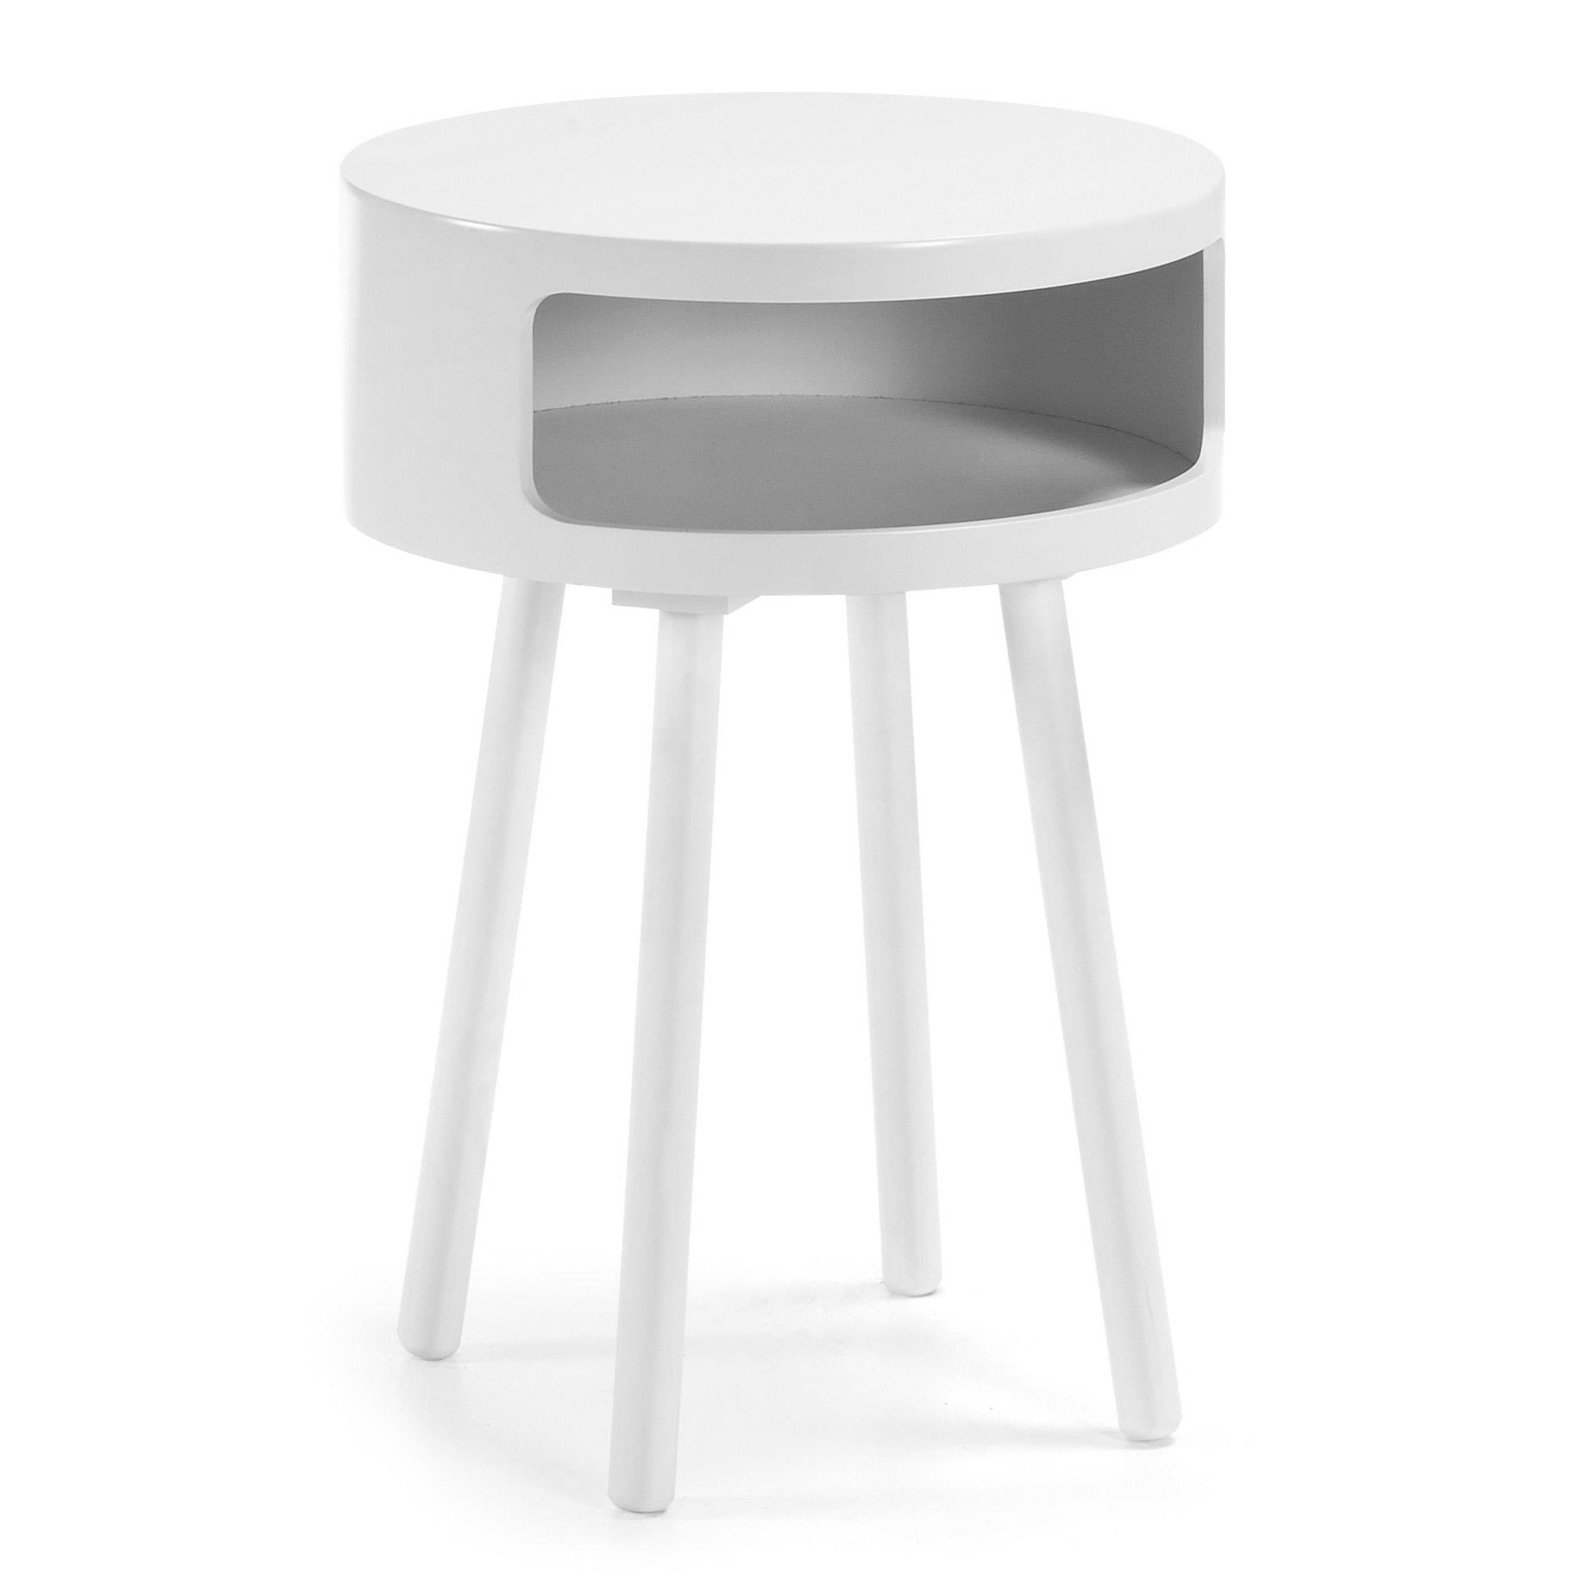 LaForma :: BRUK Side table wood white